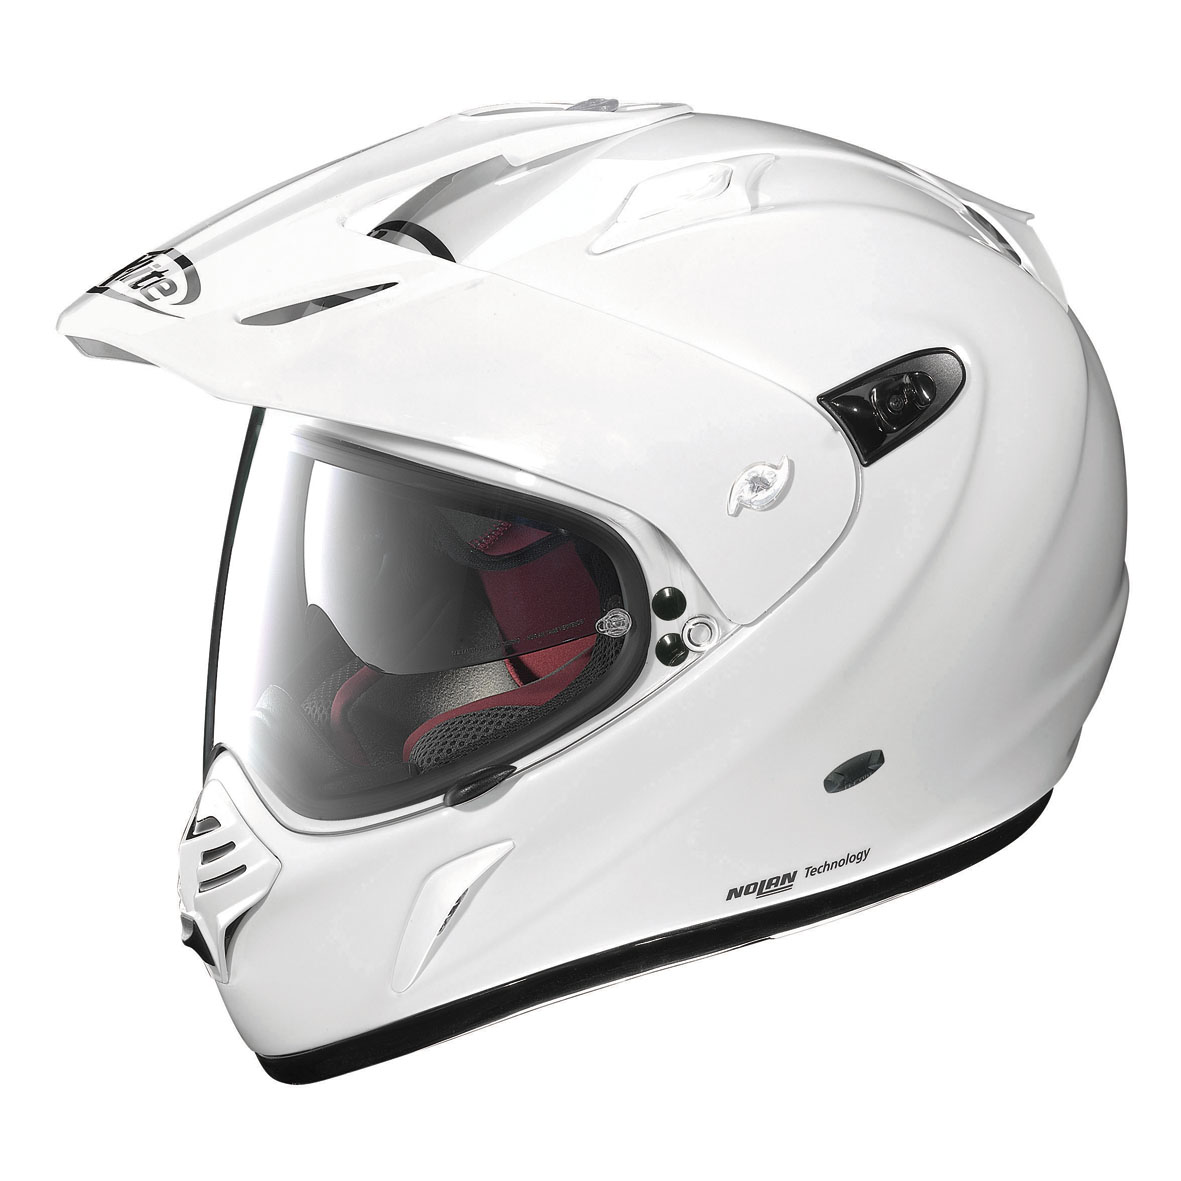 CASCO X LITE X-551 GT START N-COM 3 METAL WHITE